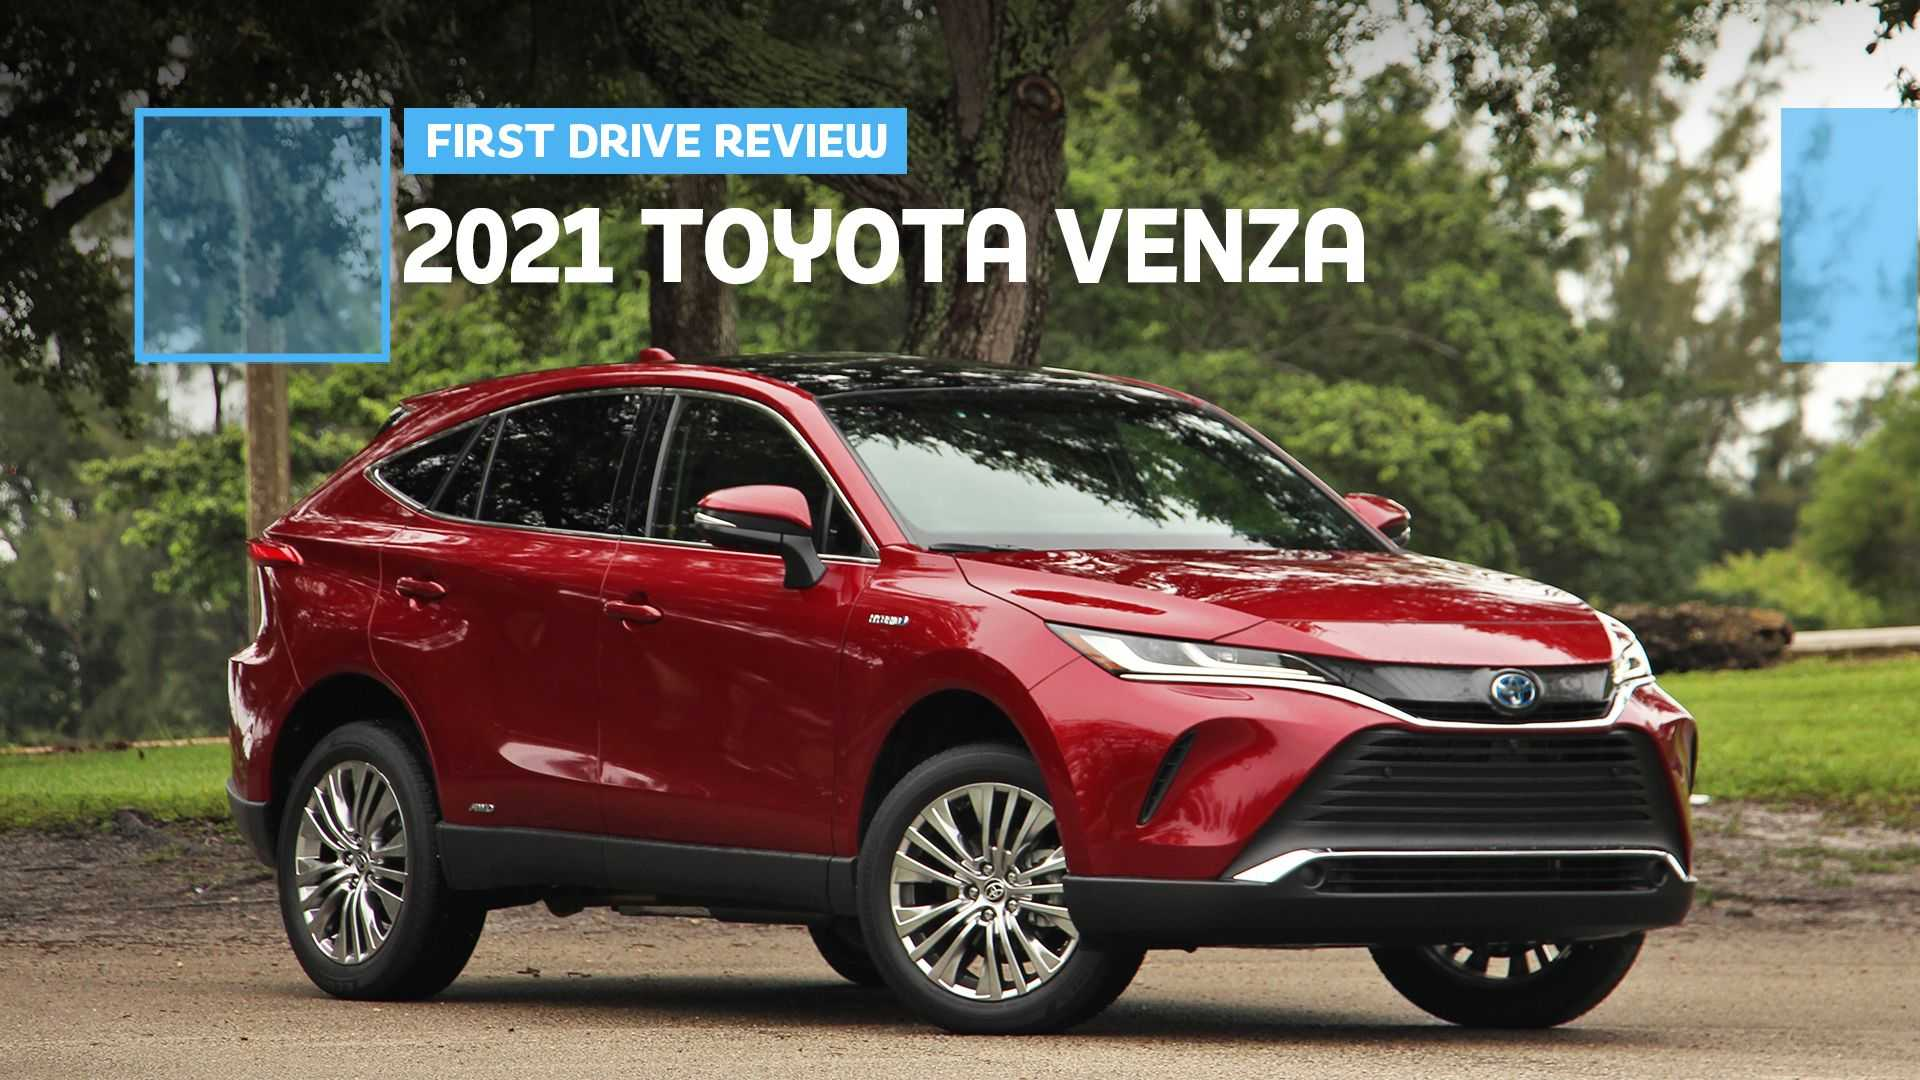 2021 toyota venza first drive review: lexus leaning